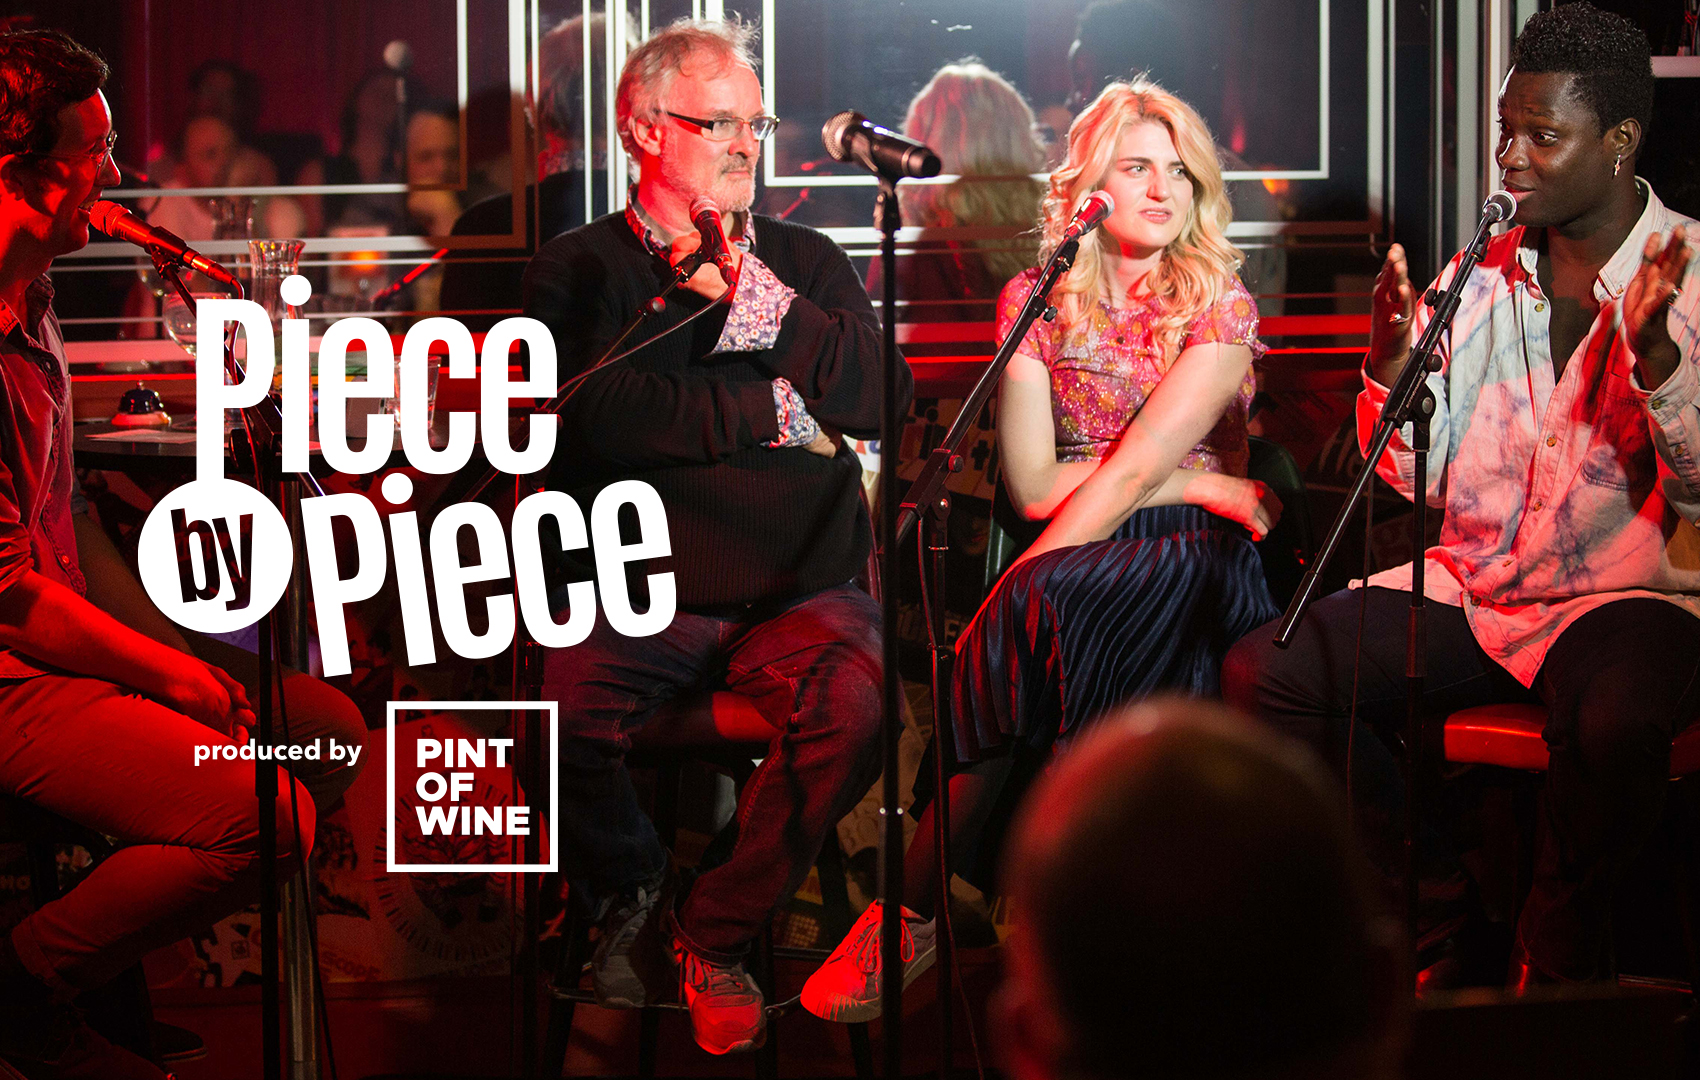 Piece by Piece podcast produced by Pint of Wine